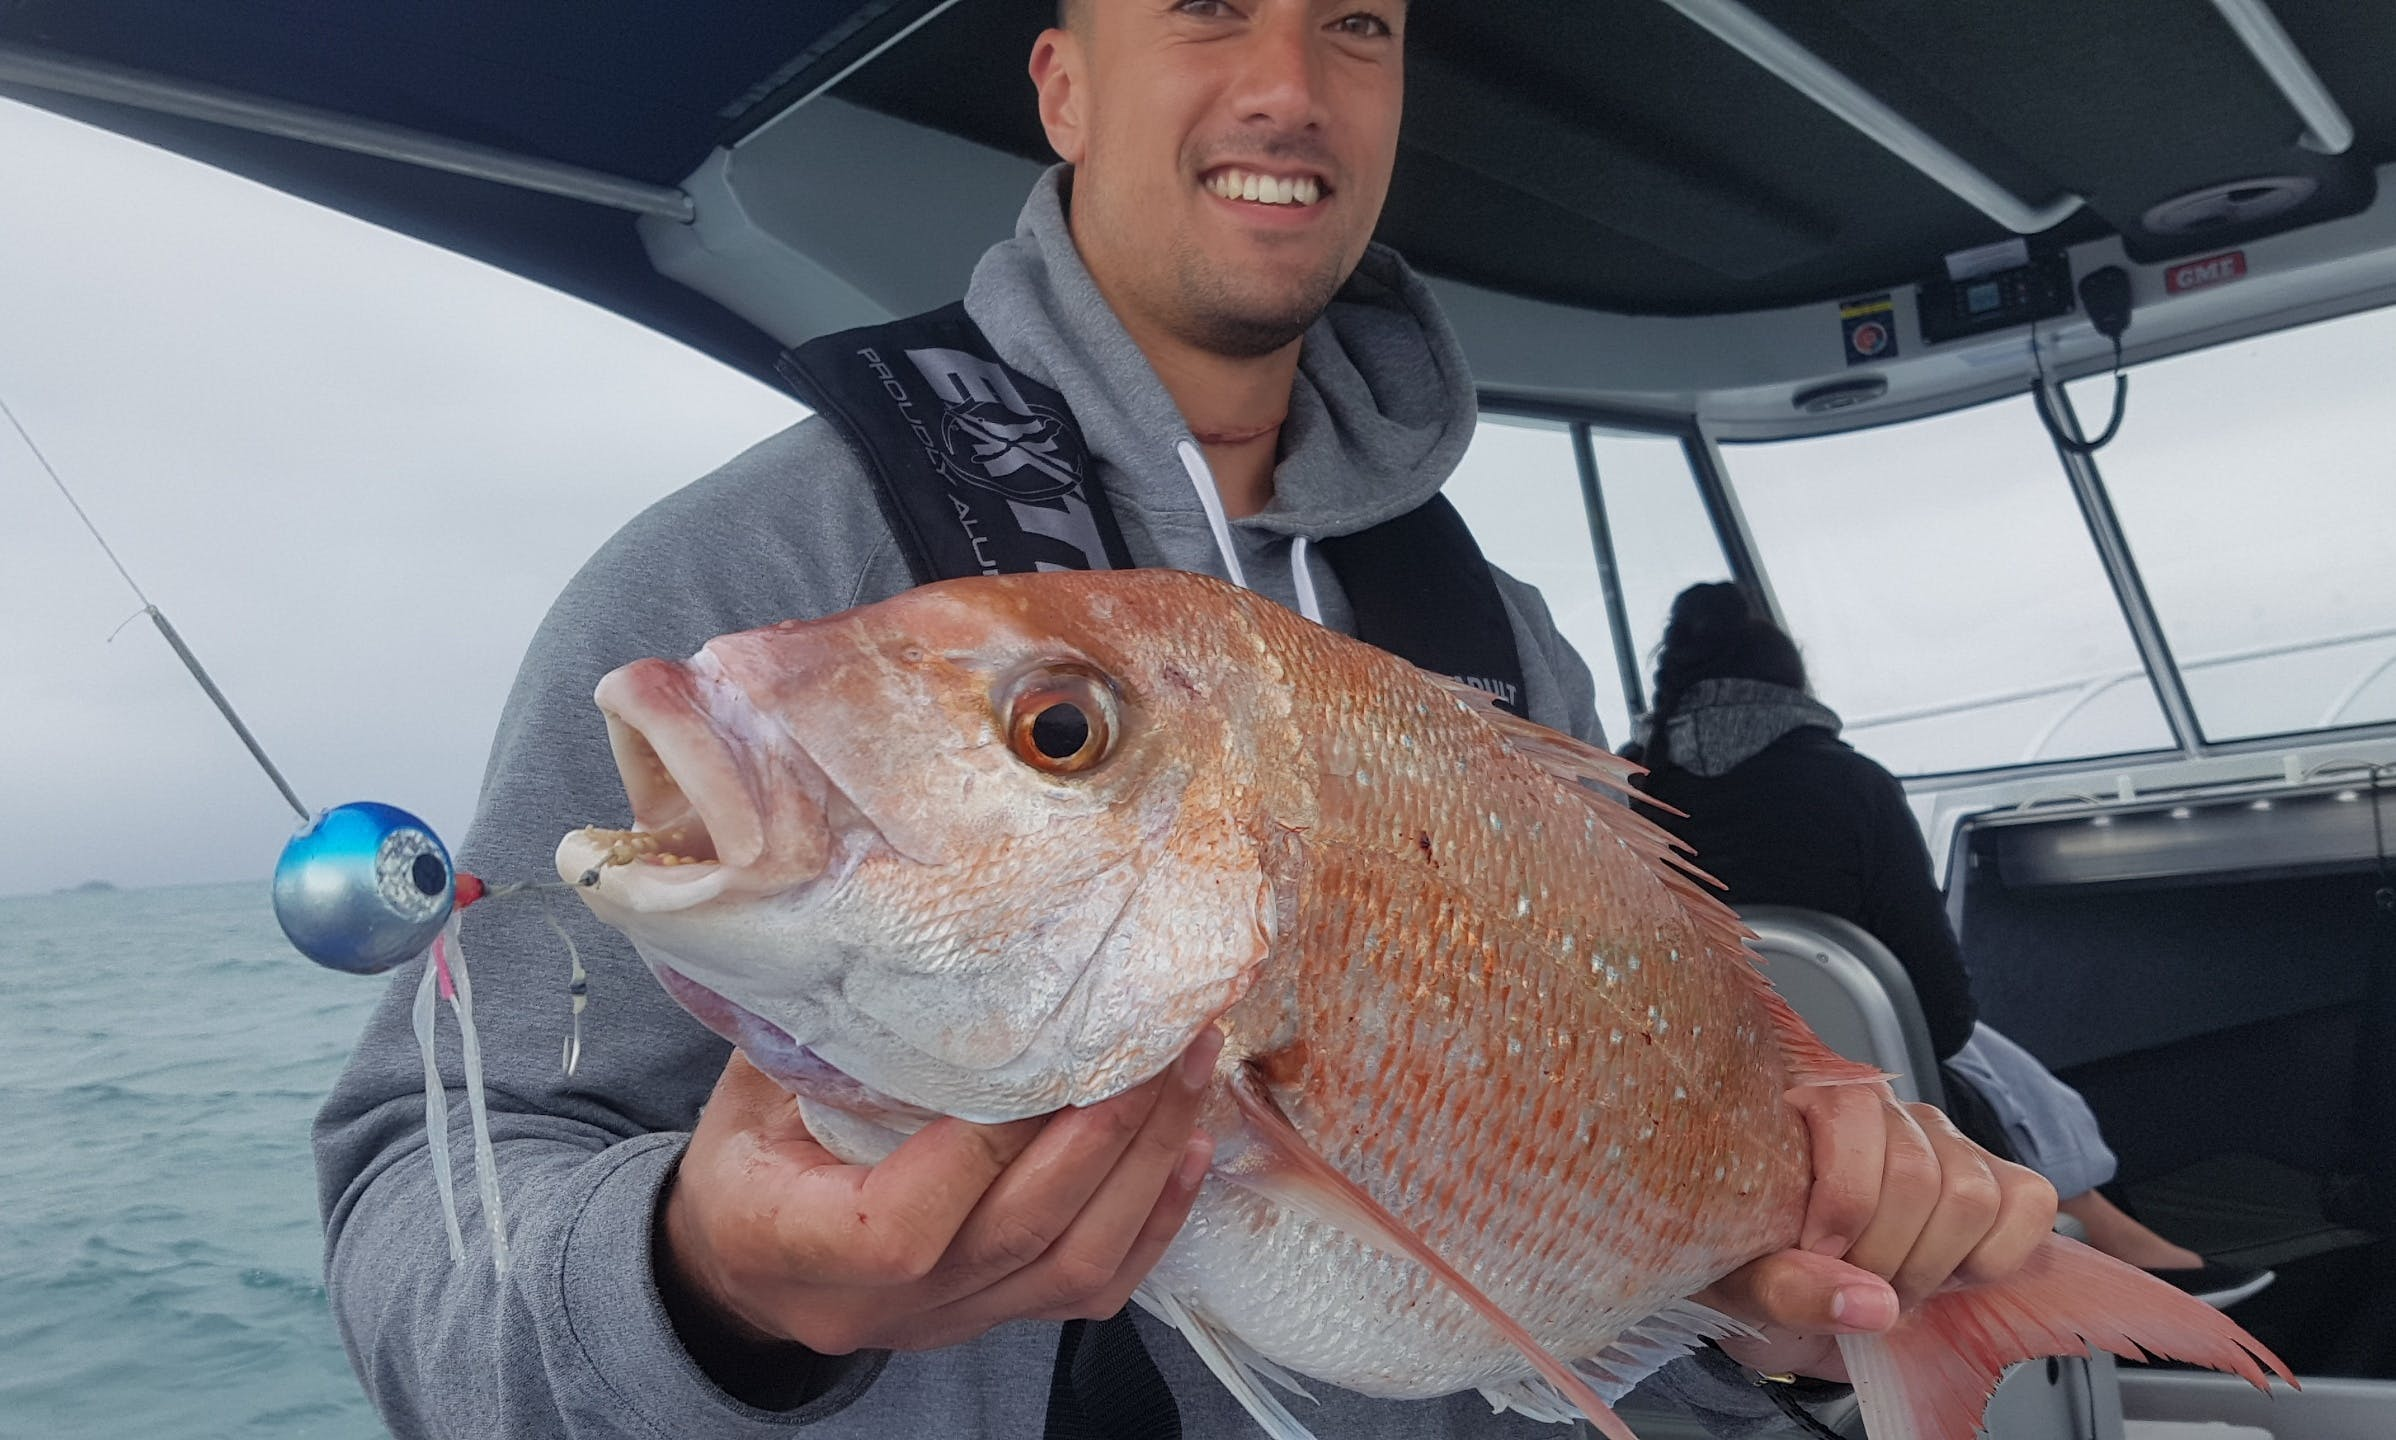 Auckland Fishing Charter on Extreme 795 Walk Around Boat with Captain Lozza